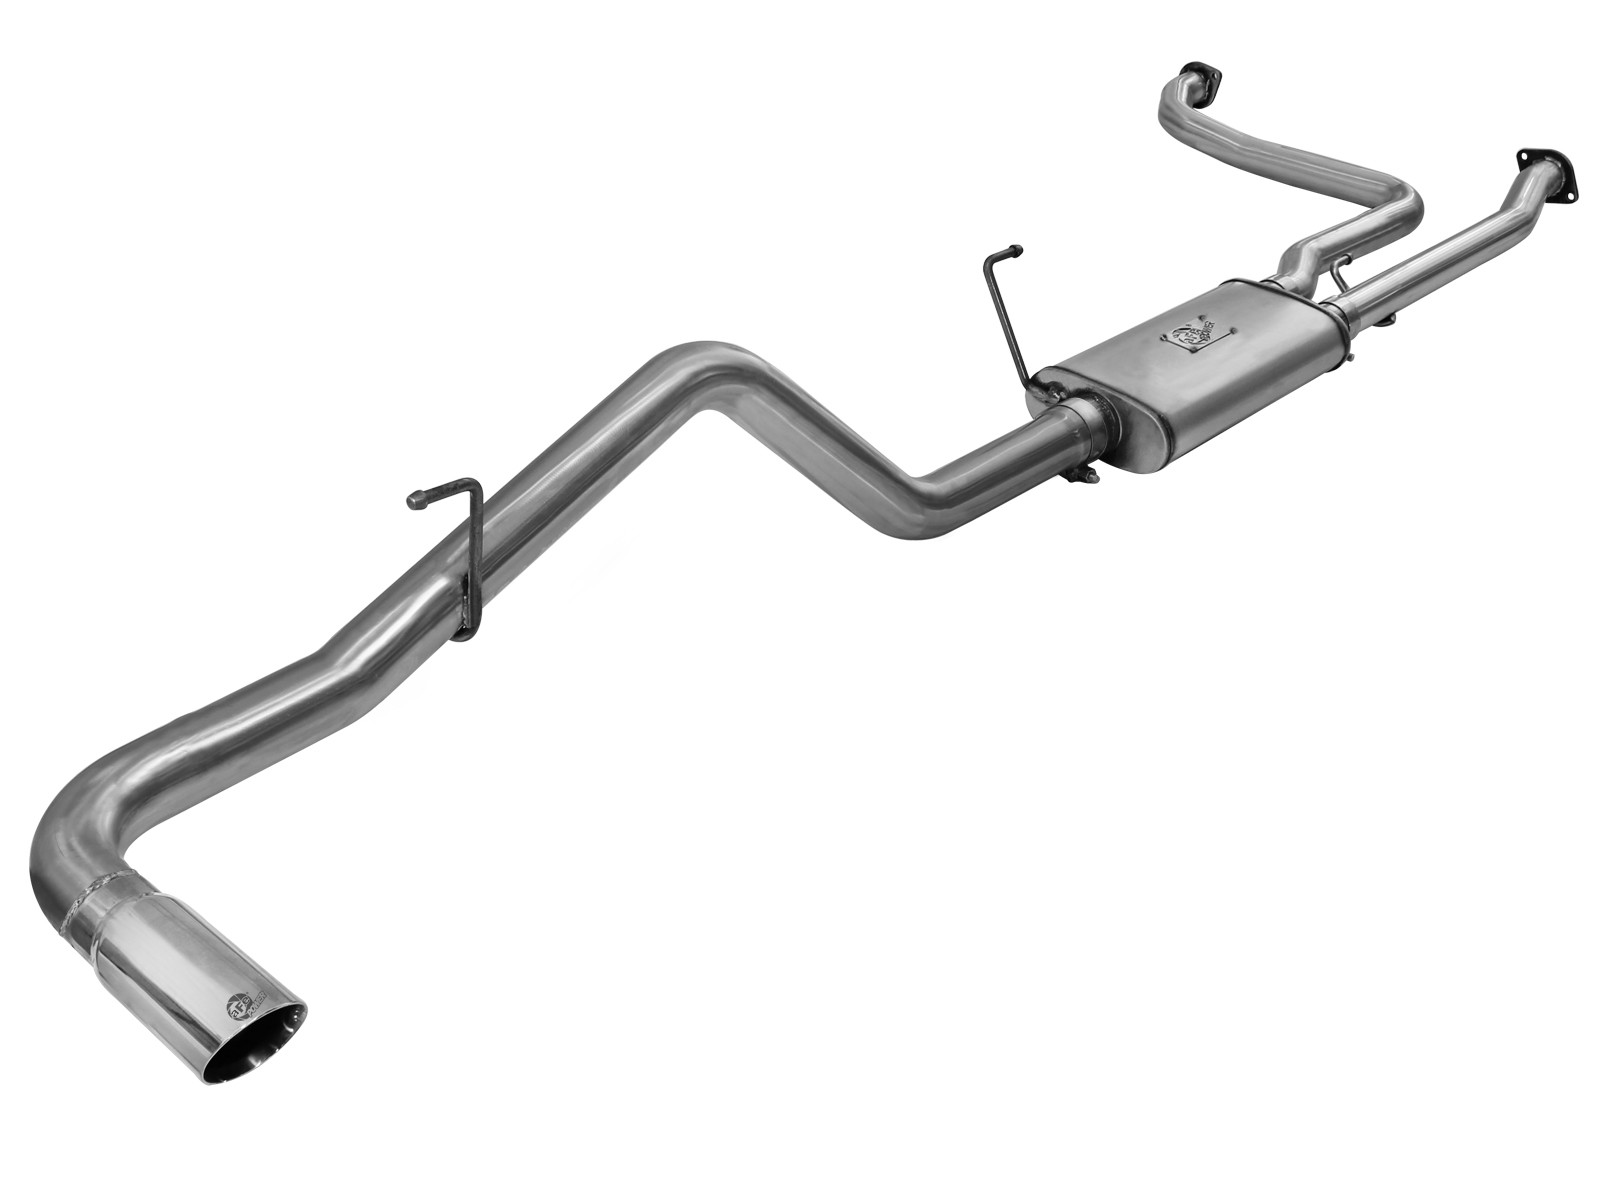 MACH Force Xp 2 1 To 3 409 Stainless Steel Cat Back Exhaust System